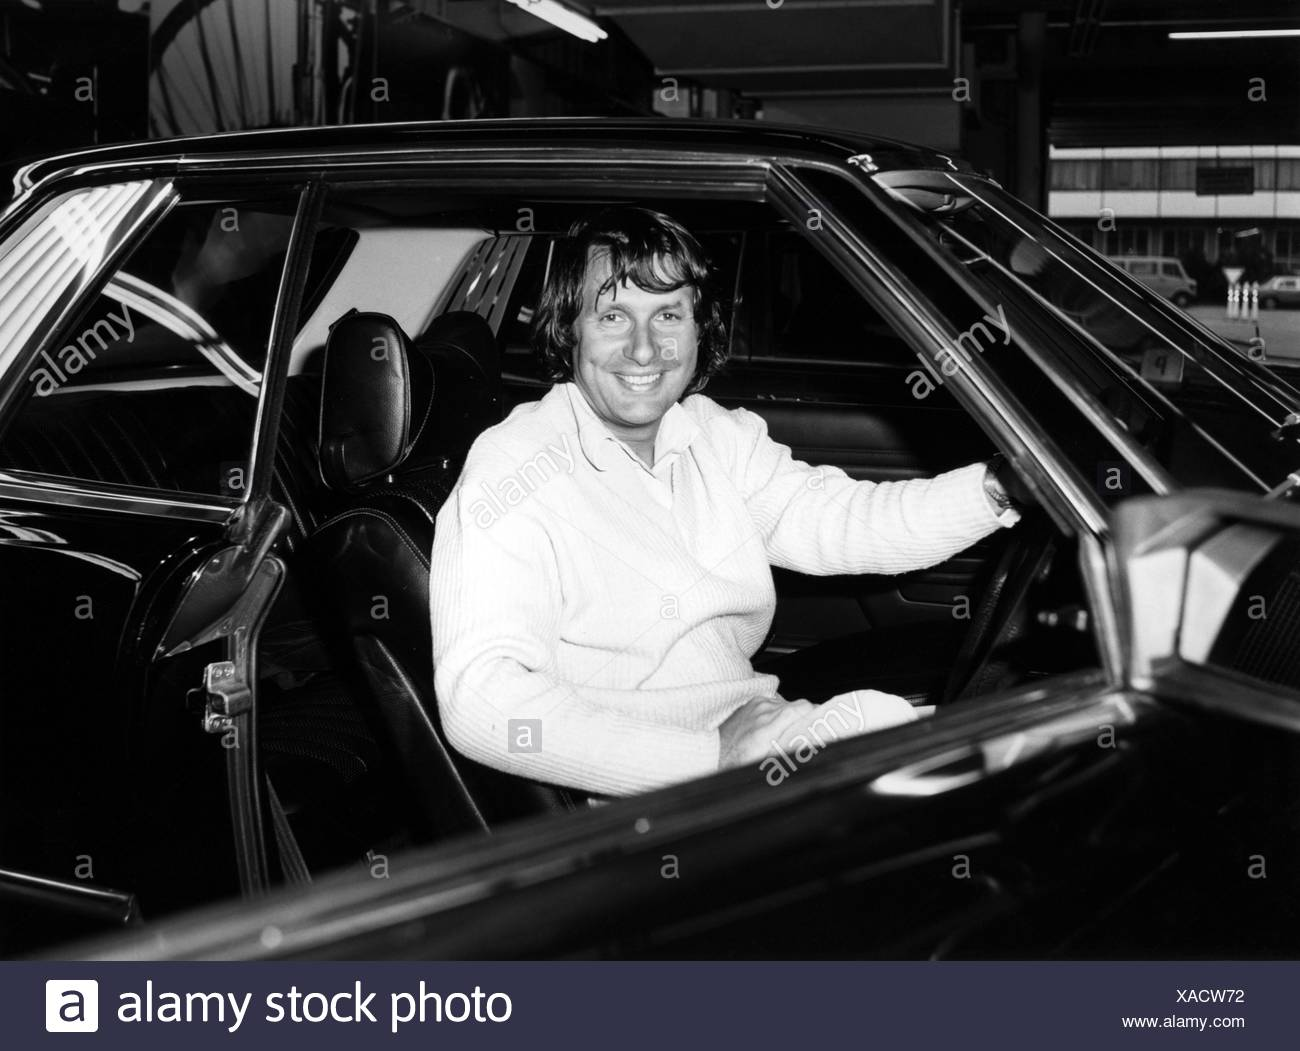 Jarier, Jean-Pierre, * 10.6.1946, French racing driver, in a Mercedes-Benz 450 SLC, 1980s, Additional-Rights-Clearances-NA - Stock Image